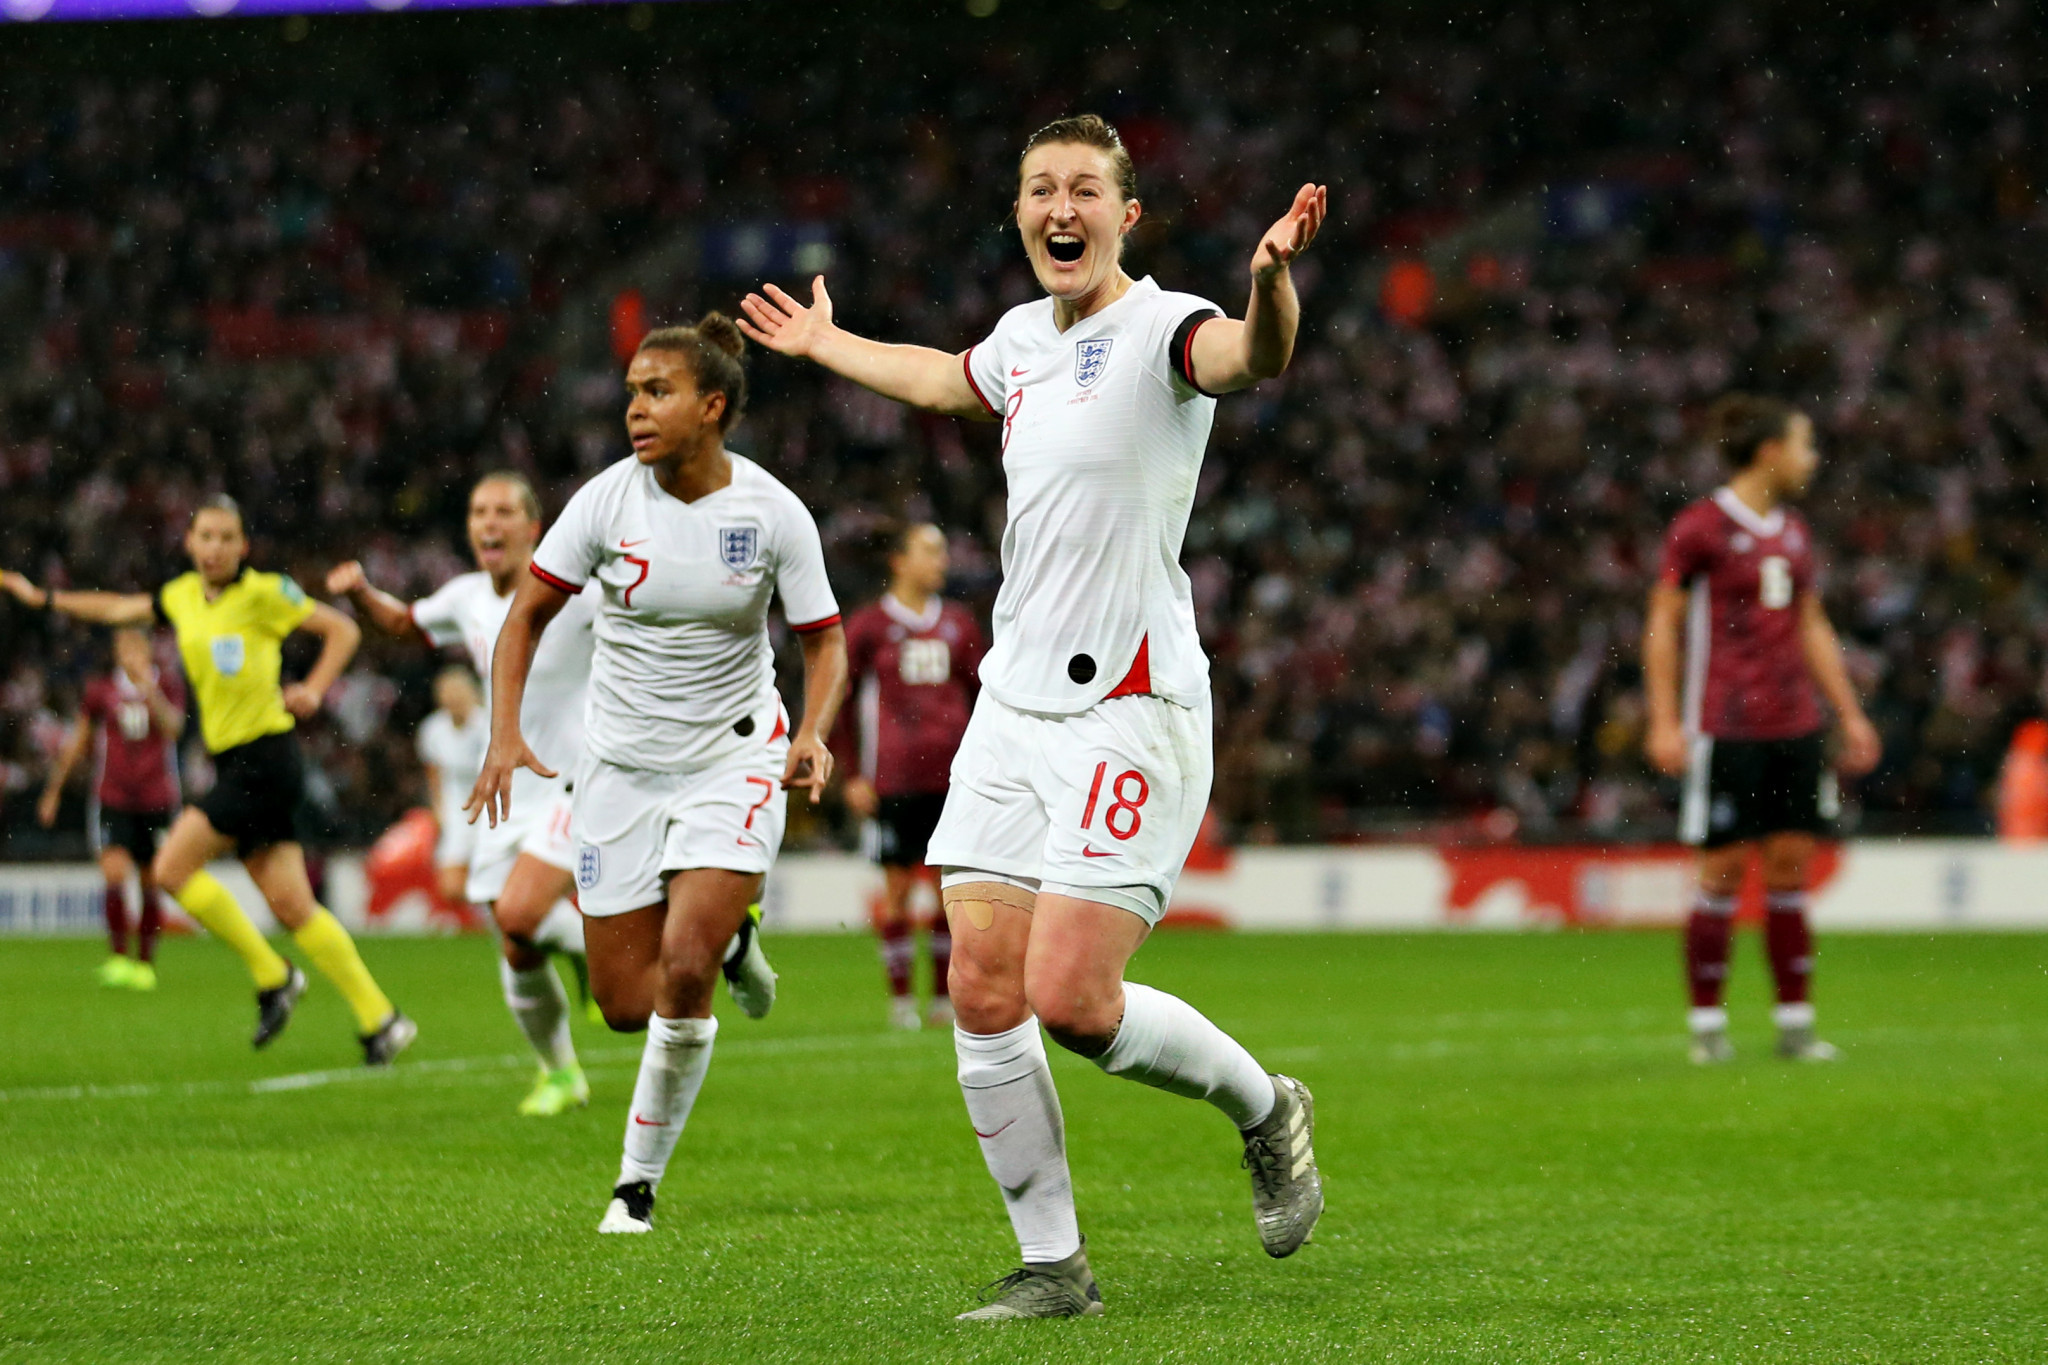 The English Football Association confirmed England women's is to be paid the same rate as their male counterparts ©Getty Images